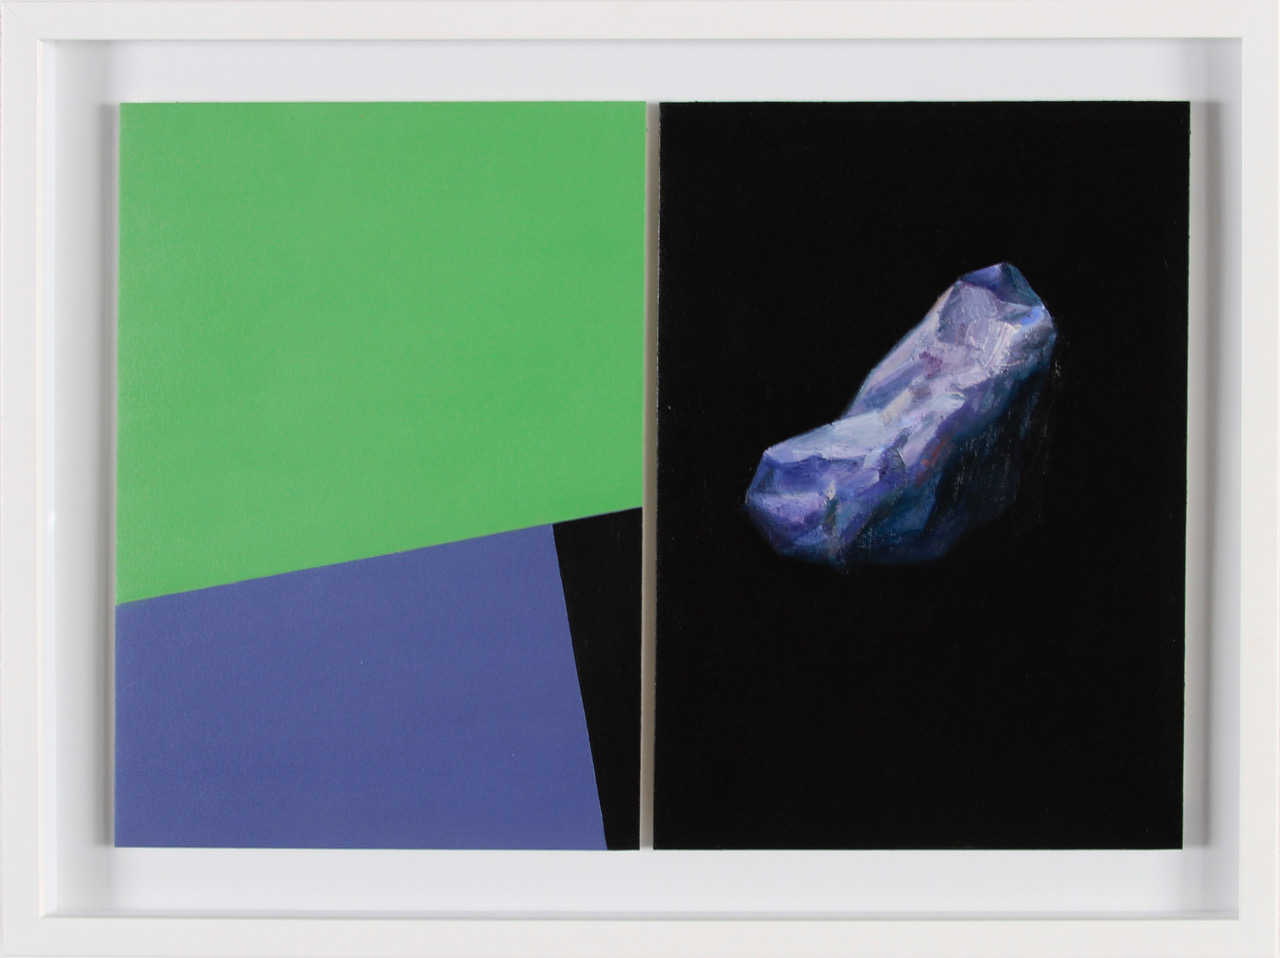 Javier Peláez, Untitled II, 2017, oil on paper, 12 x 18 inches, 15.5 x 21.5 inches framed